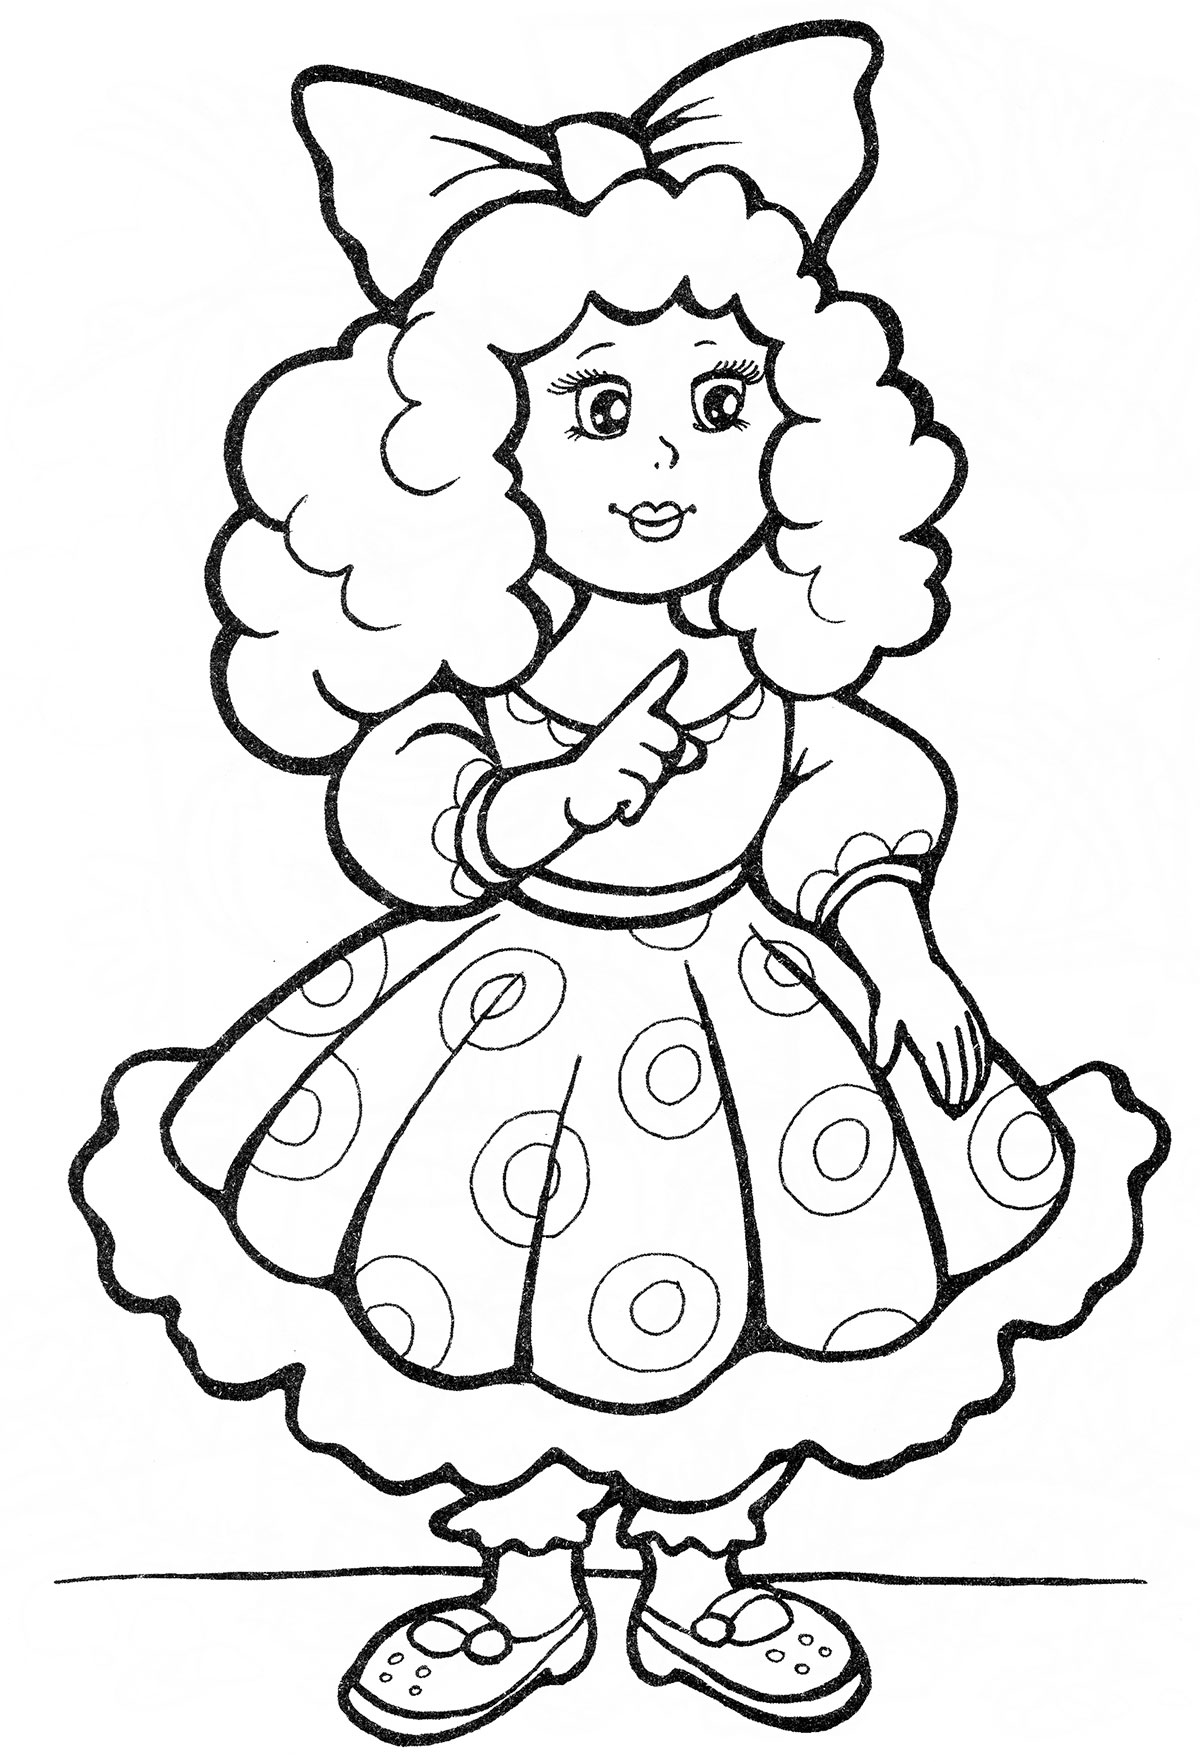 Coloring Pages For Children Of 4 5 Years To Download And